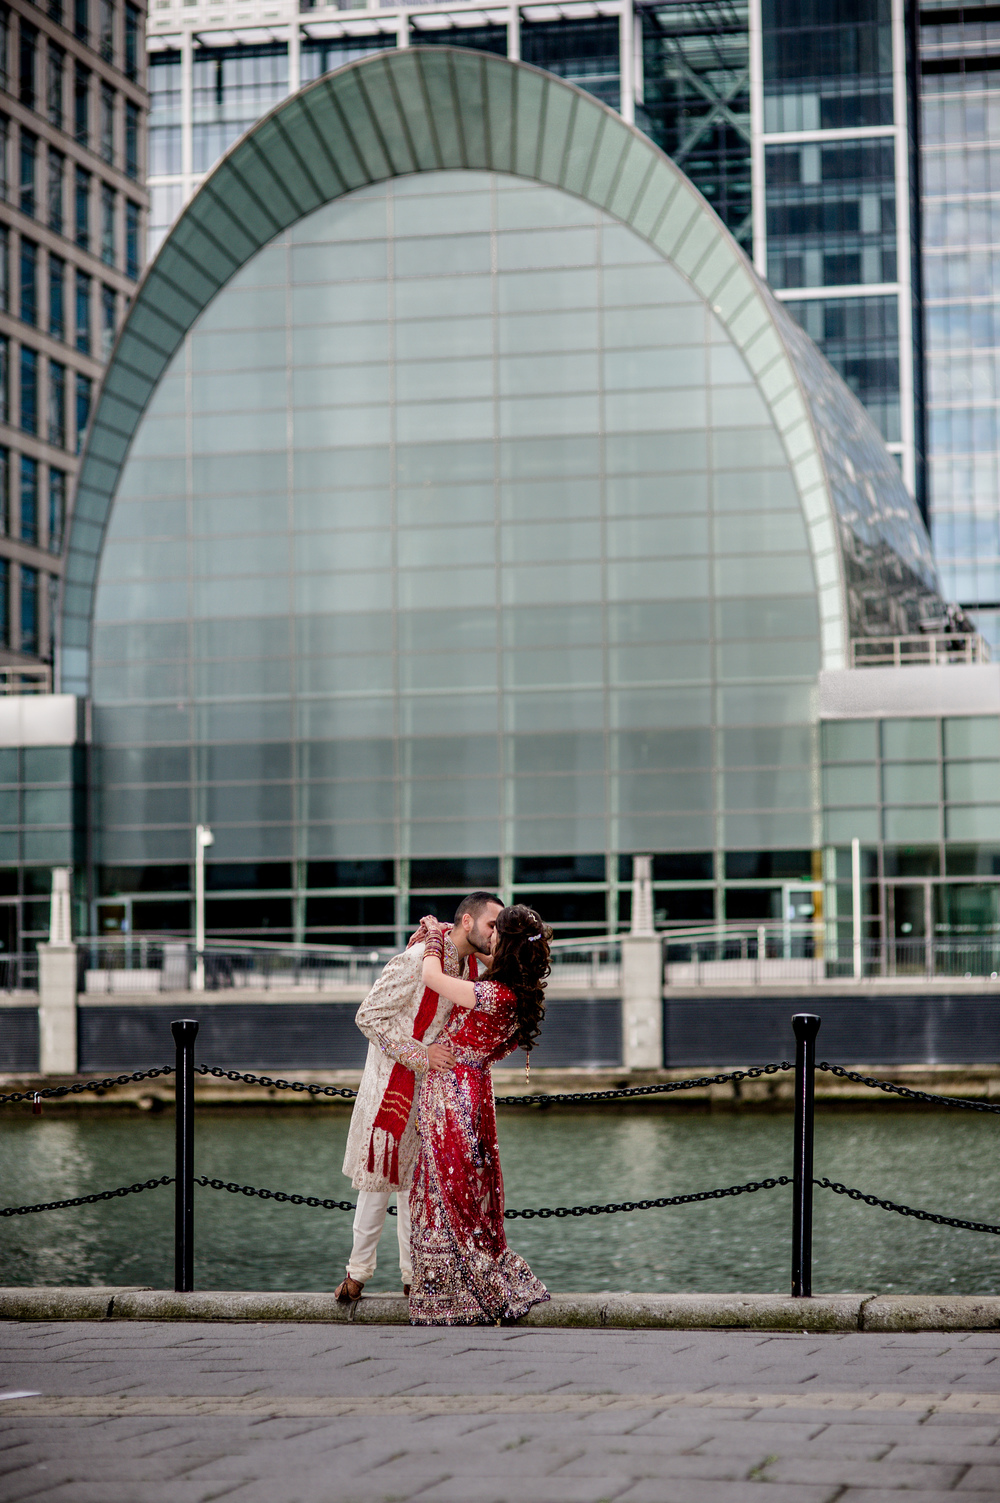 From Summer - London wedding at Canary Wharf   Superb communication, very professional, super prompt and more helpful than we could have imagined! Made everything run so smoothly and stress free! He was a great recommendation and his wife Emma was very helpful and so lovely!  Our guests commented on our wedding day and afterwords on how great and professional you both were...   More importantly you know your stuff and your work is incredible!   I think we will have wedding photos EVERYWHERE in our house ;)  Thanks again!  Mr & Mrs Bhalsod    From Umesh:    David and his wonderful wife Emma not only met our expectations but by far exceeded them. We felt so proud to have these lovely people take our photographs for our wedding day. They made us feel so relaxed and were always on hand to help, not only as photographers but as genuine, caring people. You guys helped make our day that extra bit special and we will certainly be in touch in the future to help us create more wonderful memories. Would we recommend David for your wedding? In a heartbeat.